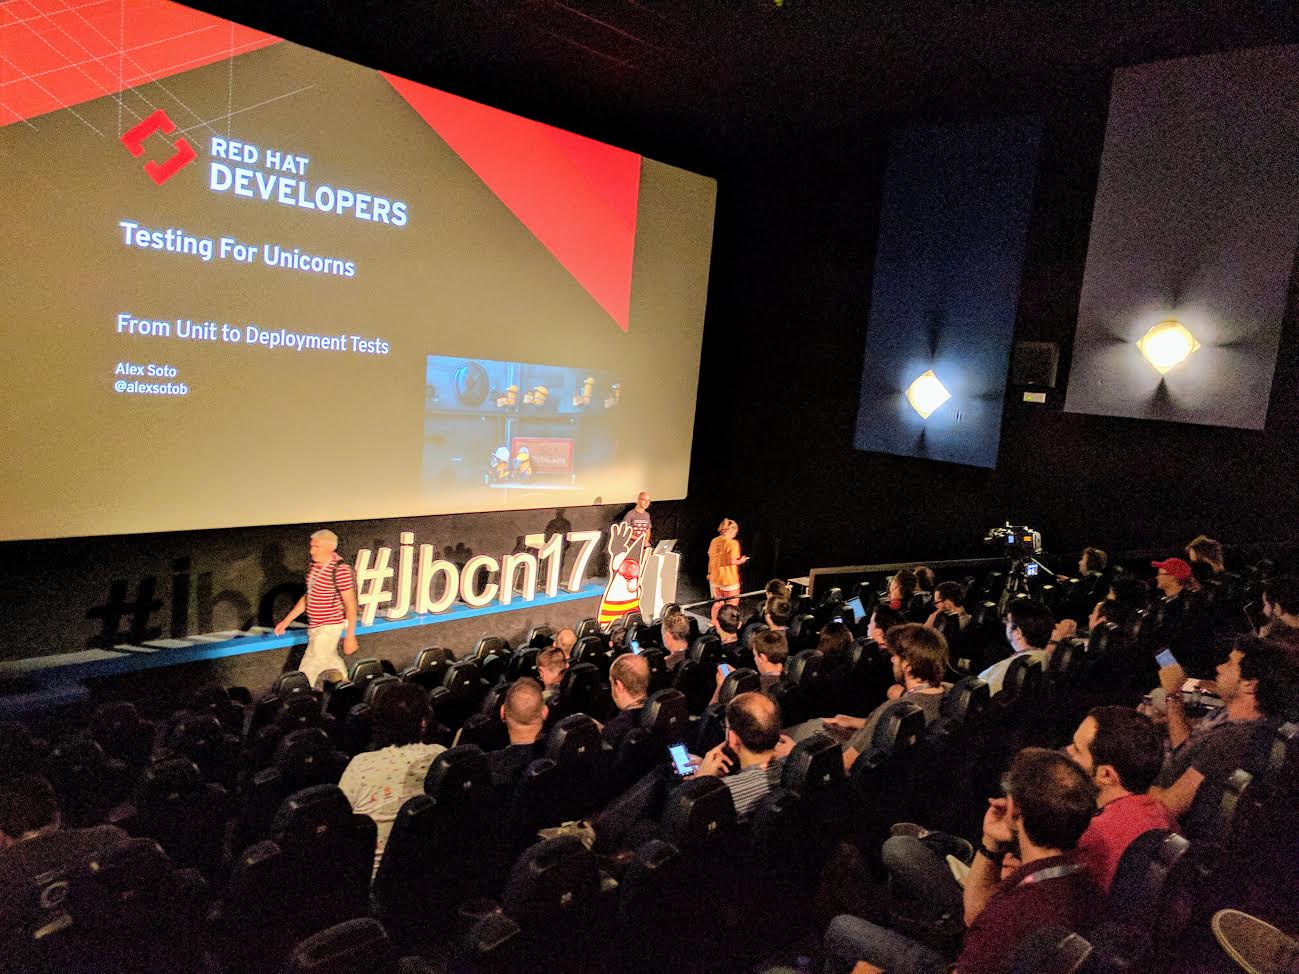 Photo from the official Twitter account @jbcnconf